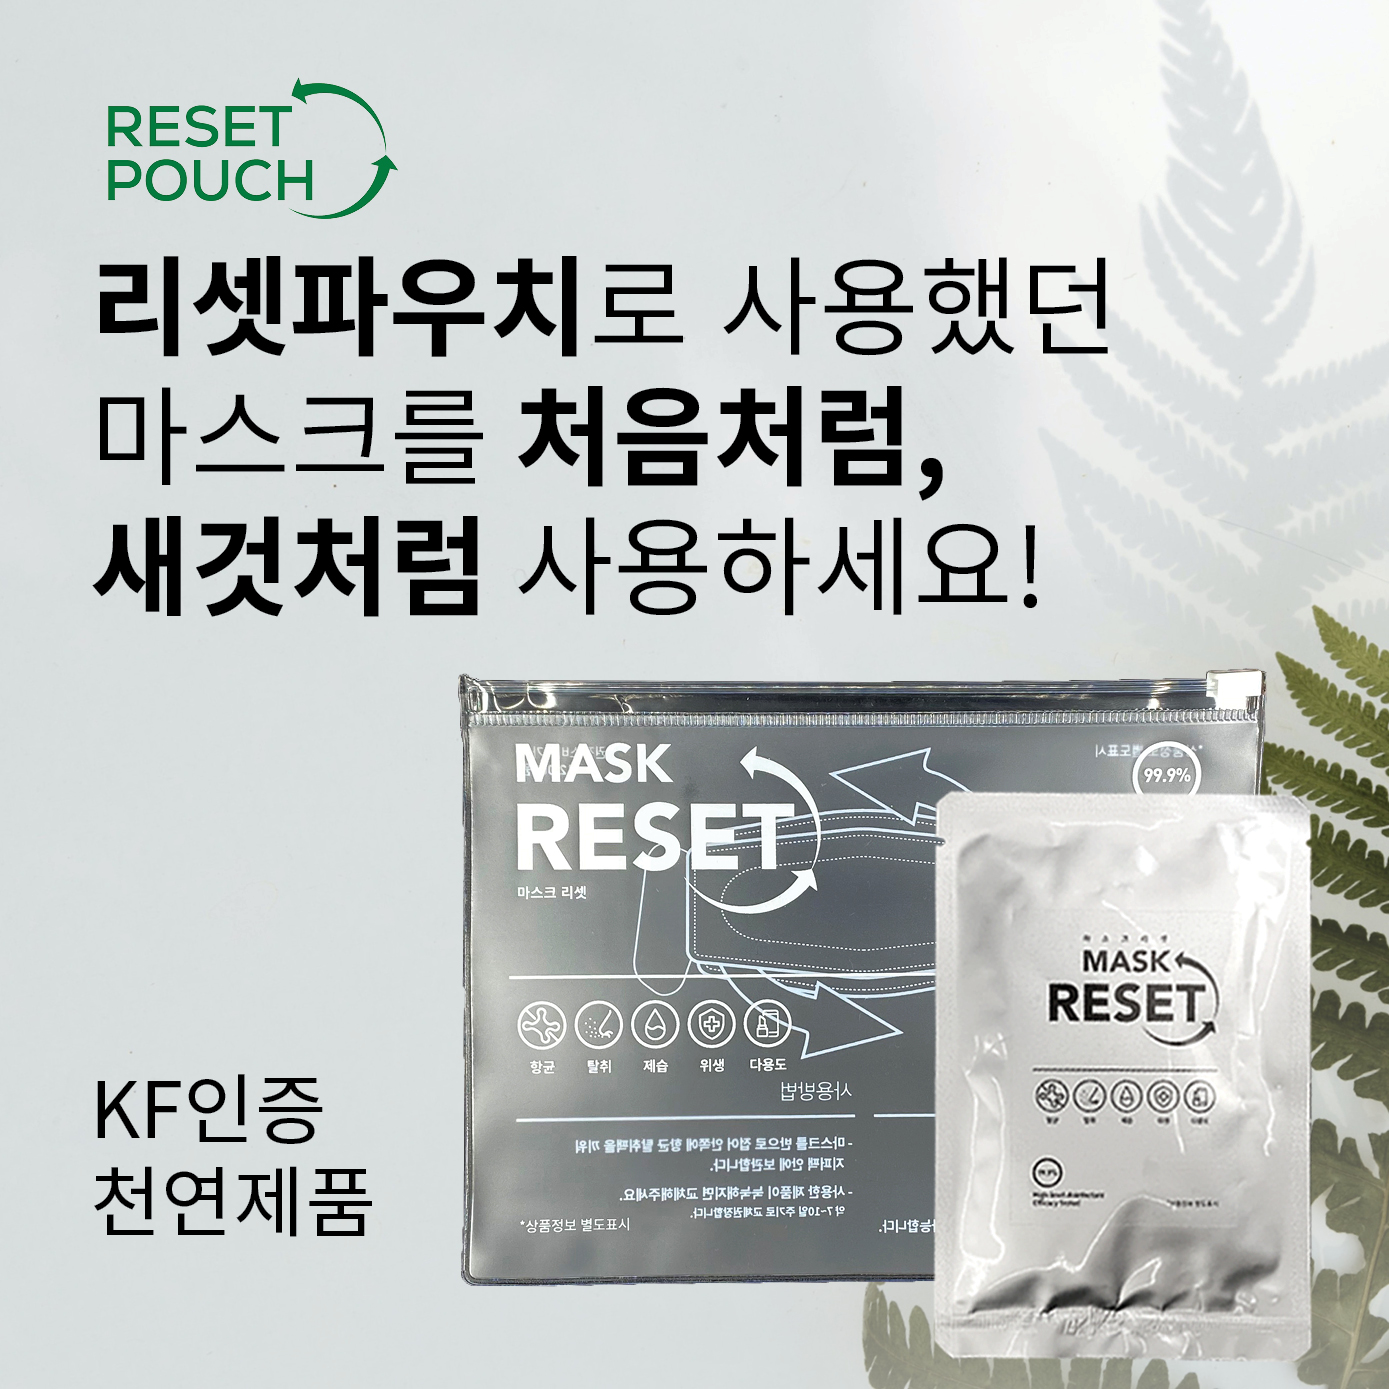 Allkgoods Reset Pouch Cover Pic